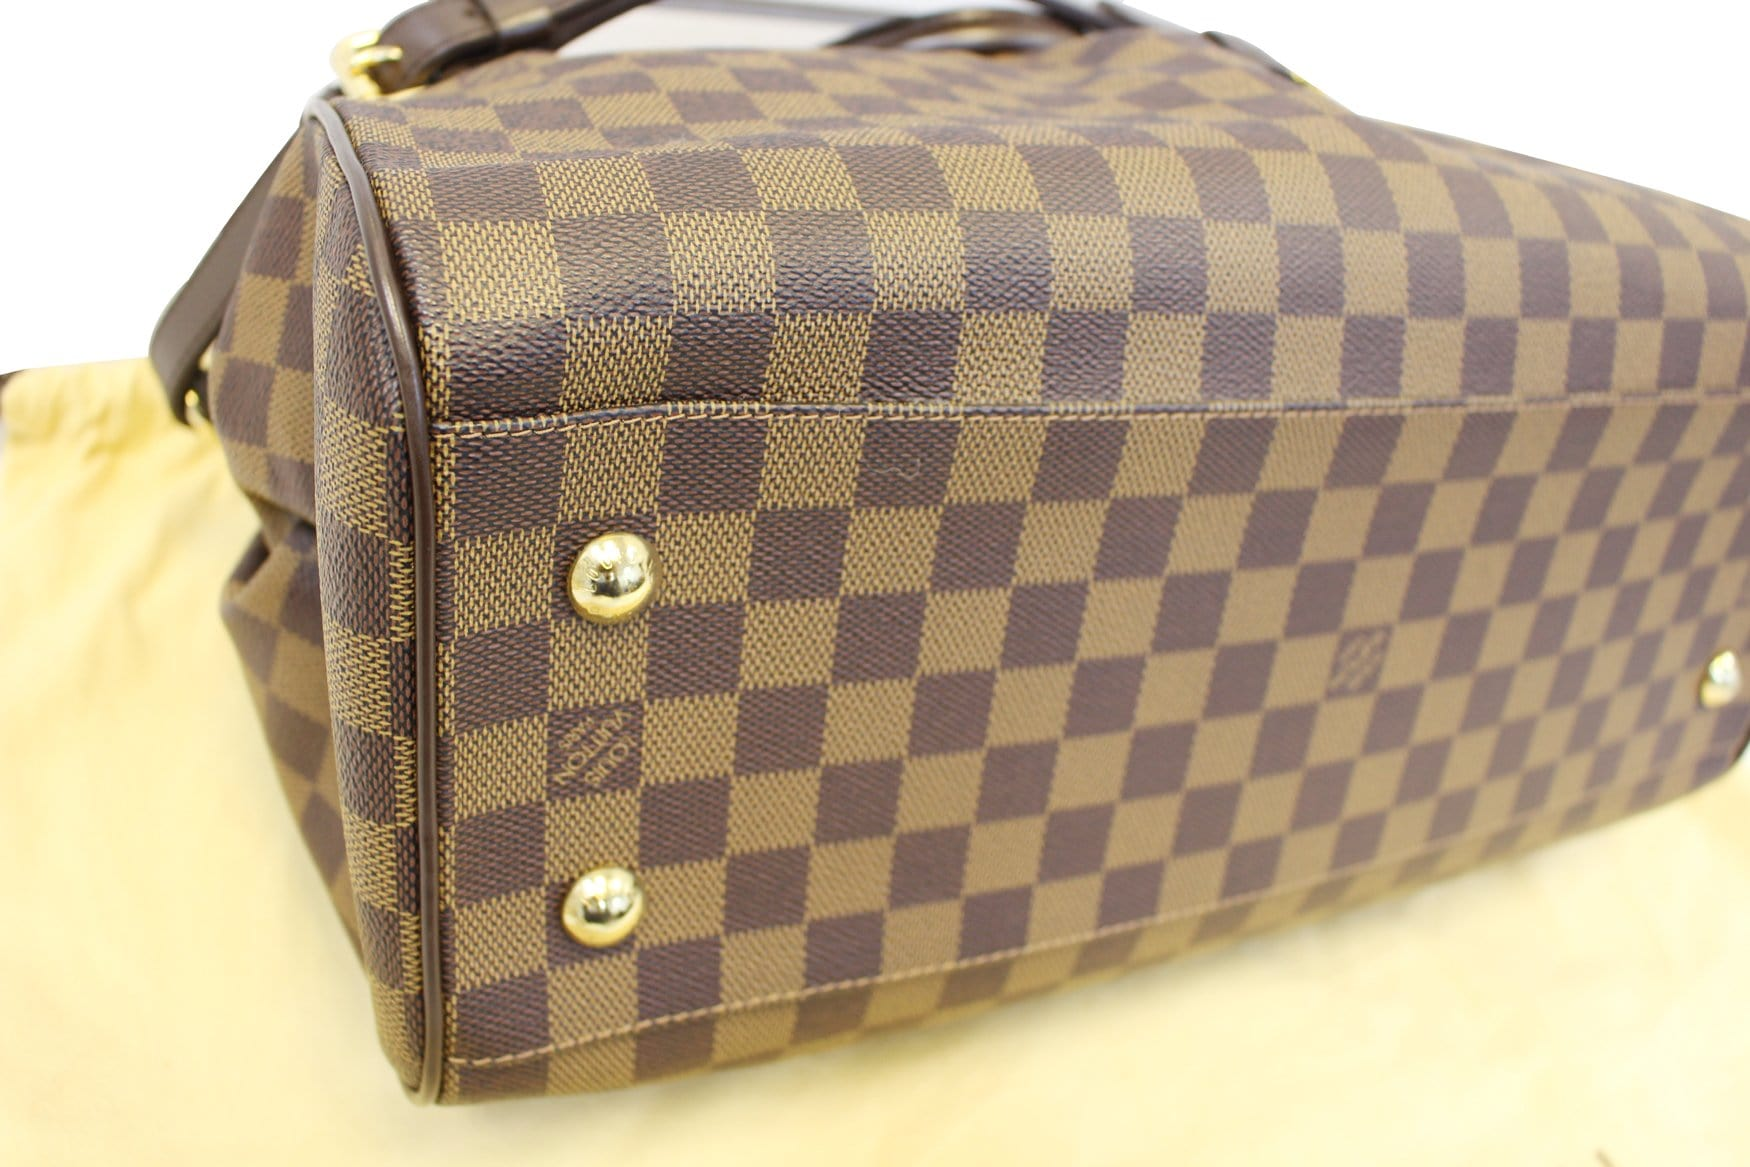 94294e2b80a6 LOUIS VUITTON Trevi GM Damier Ebene 2way Handbag